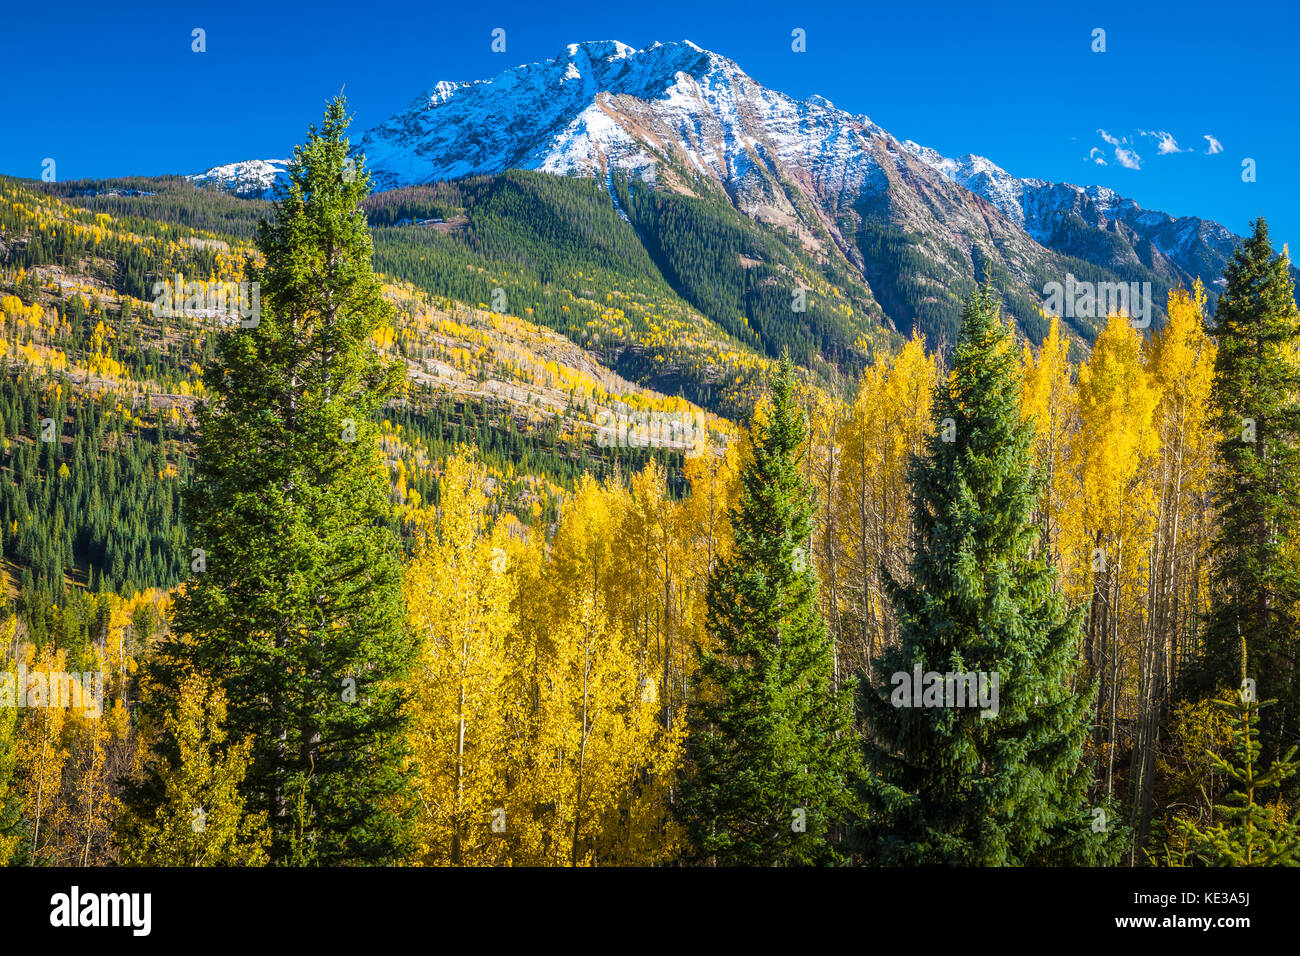 Snowden Peak in Colorado's Rocky Mountains - Stock Image